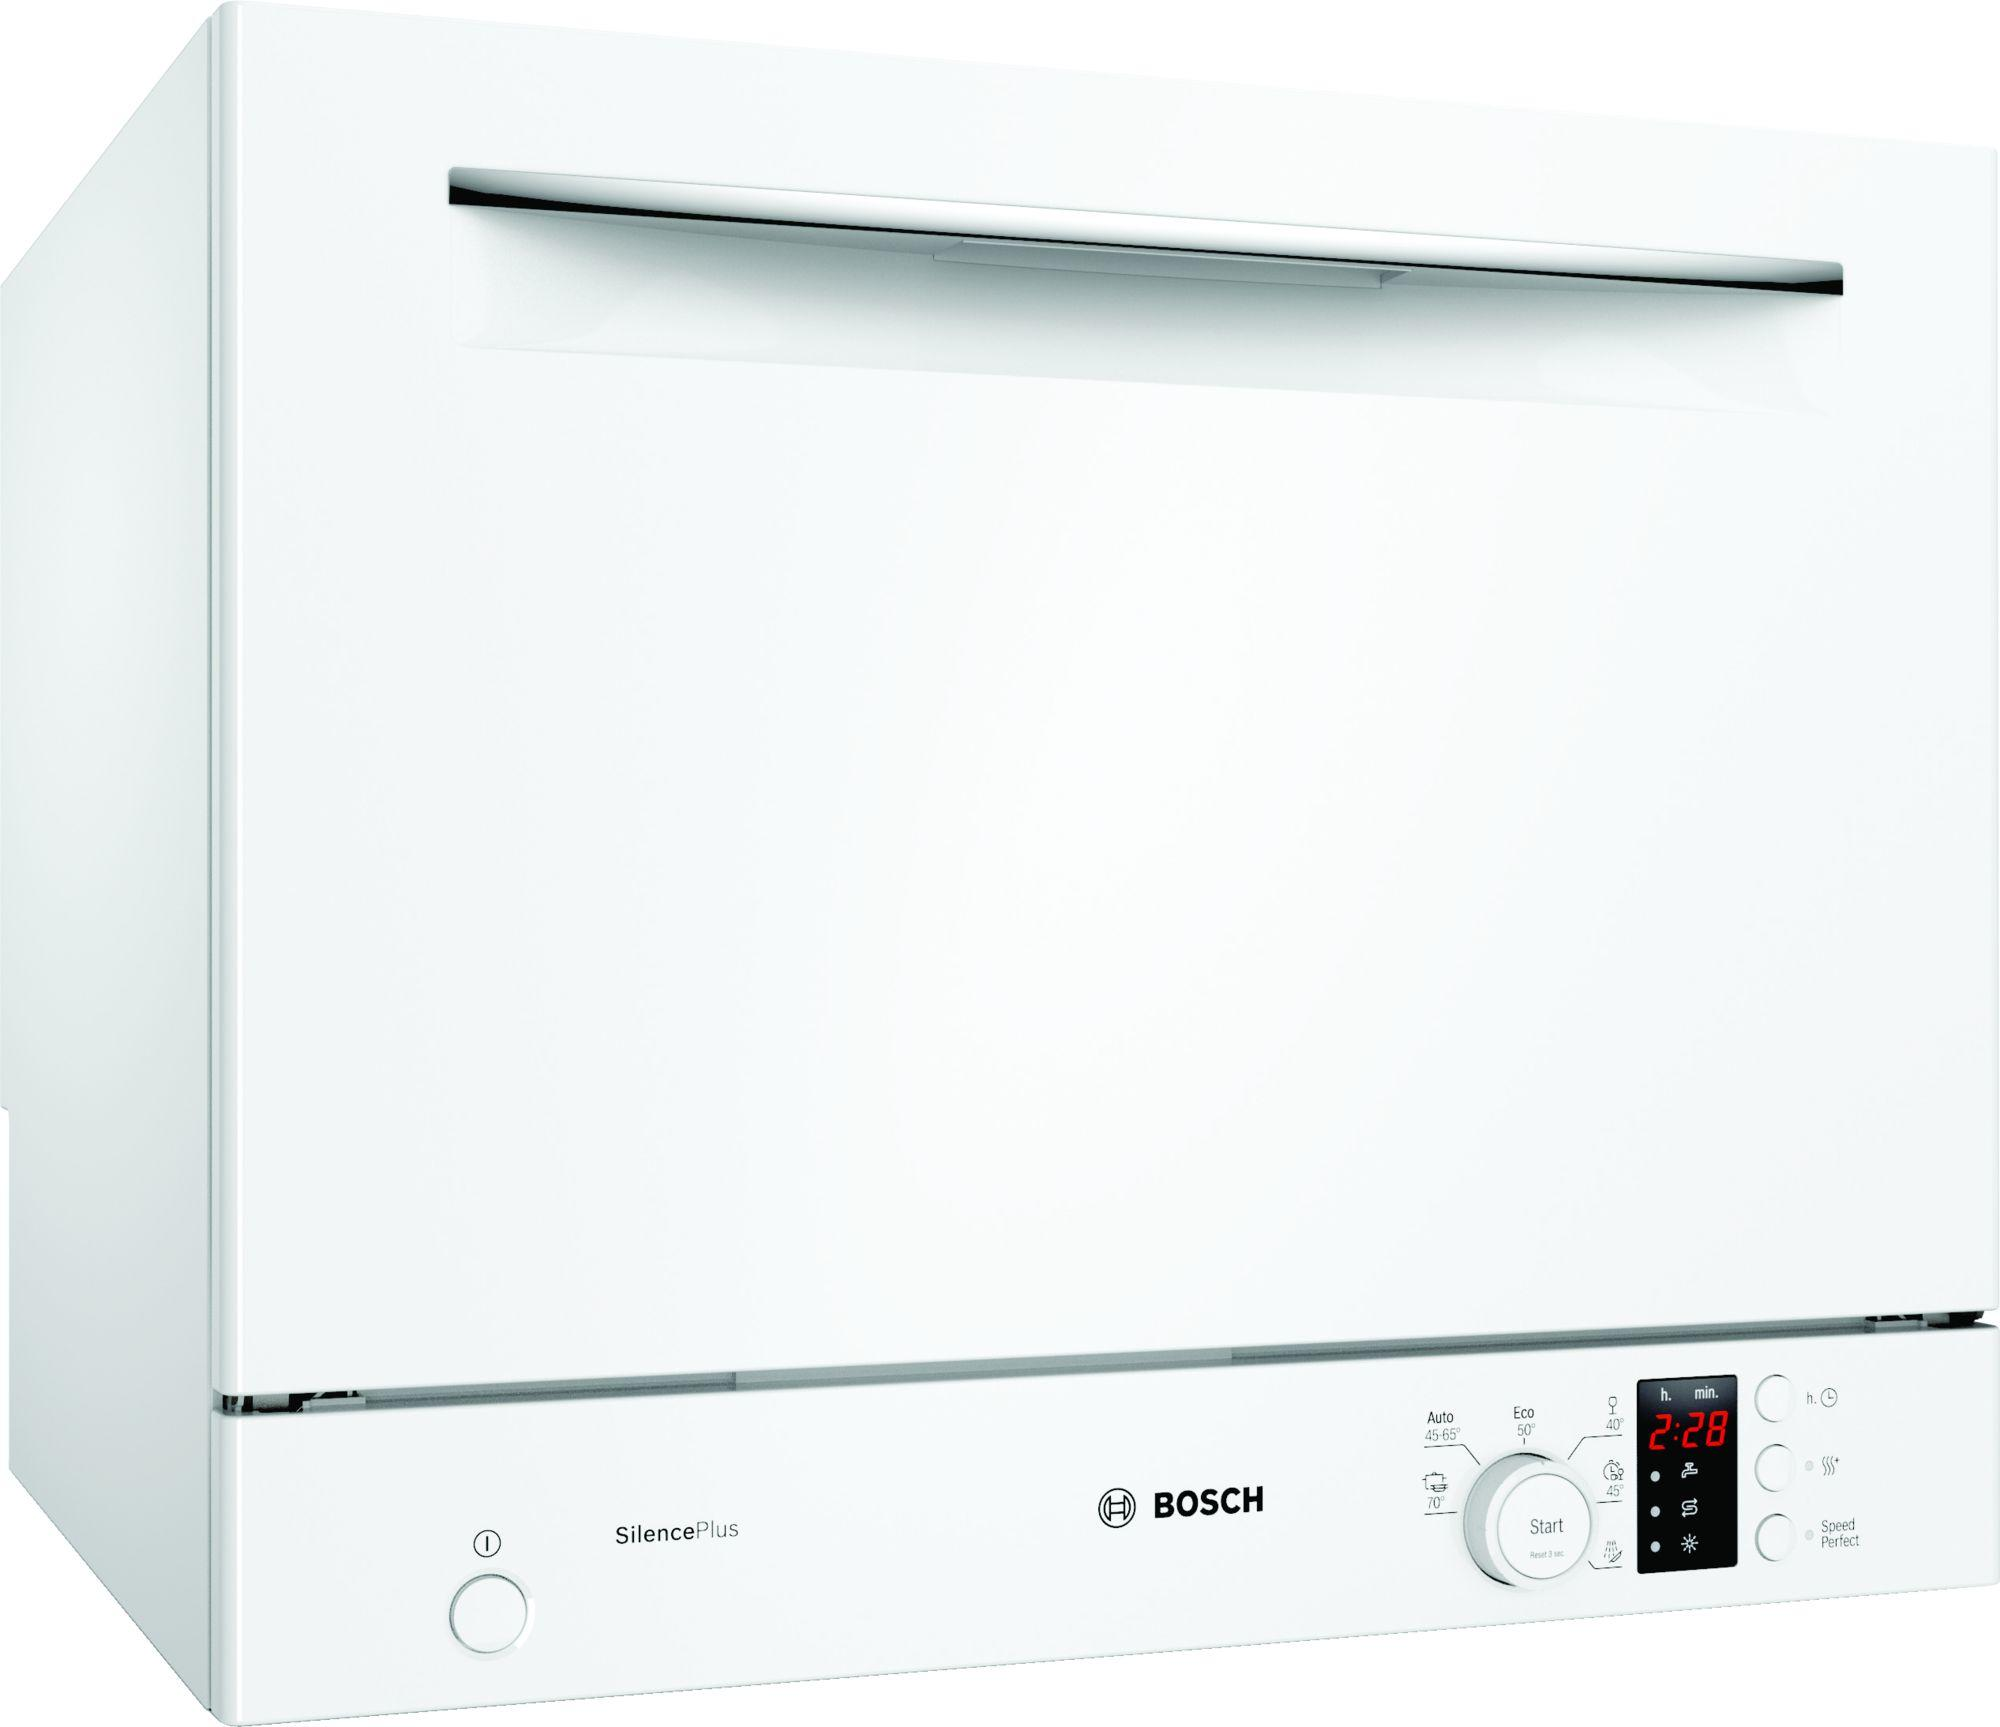 Image of Serie 4 SKS62E32EU 55cm Table Top Dishwasher